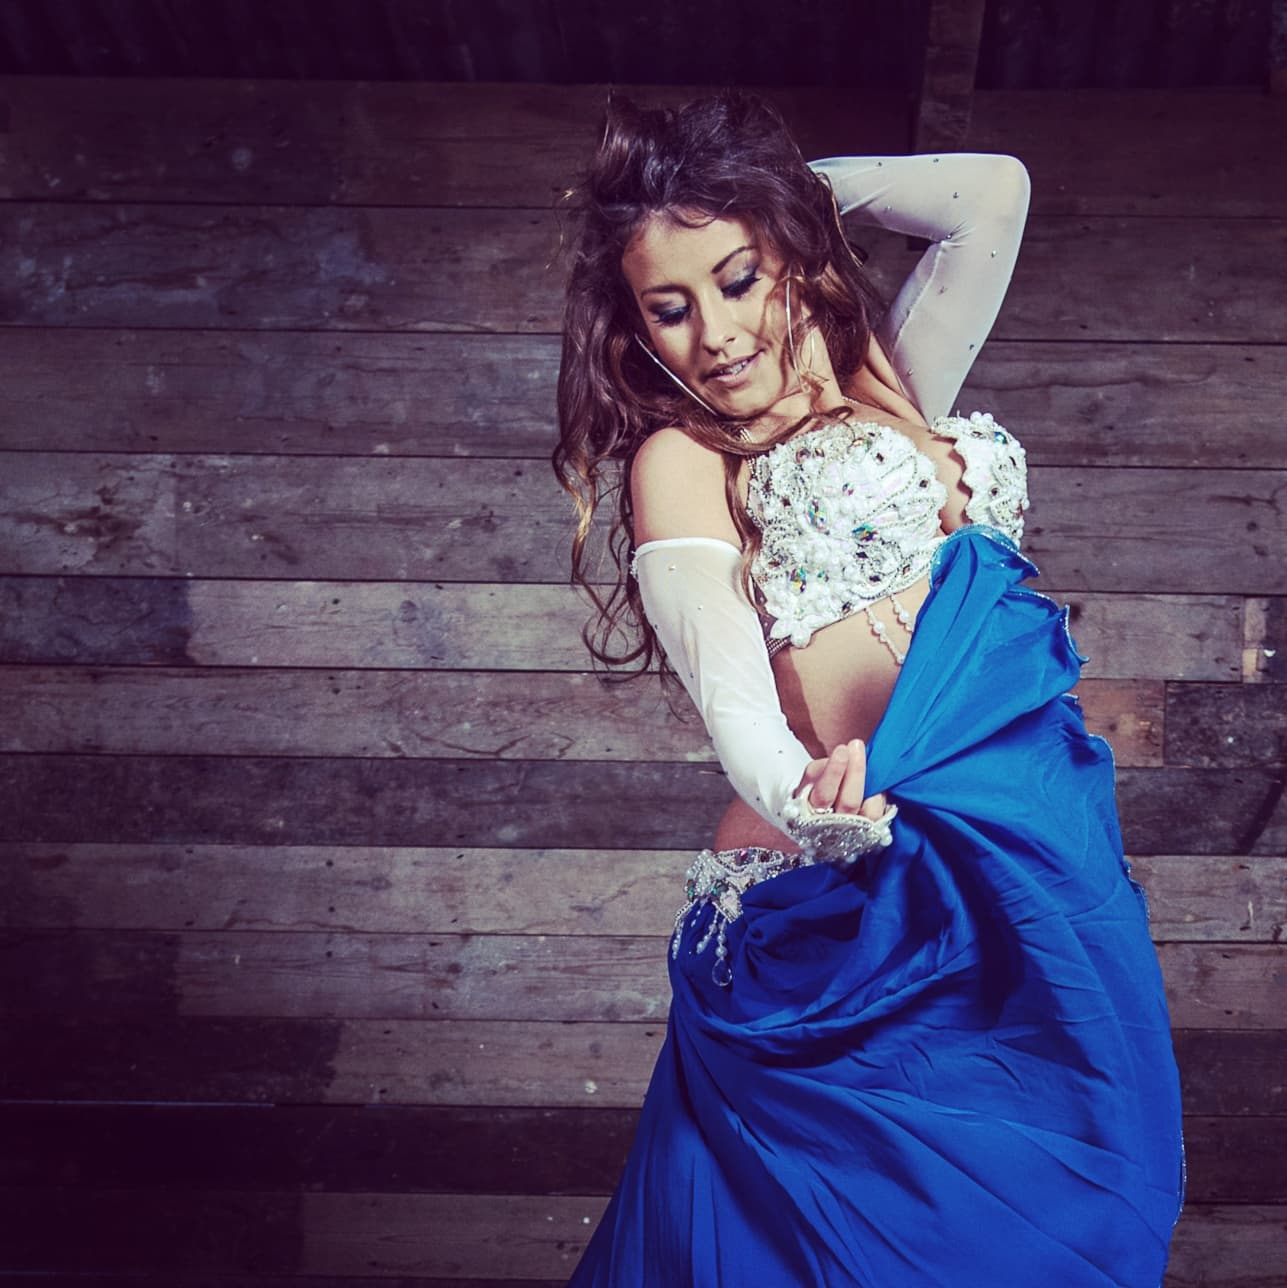 belly dance london photoshoot summer 2016